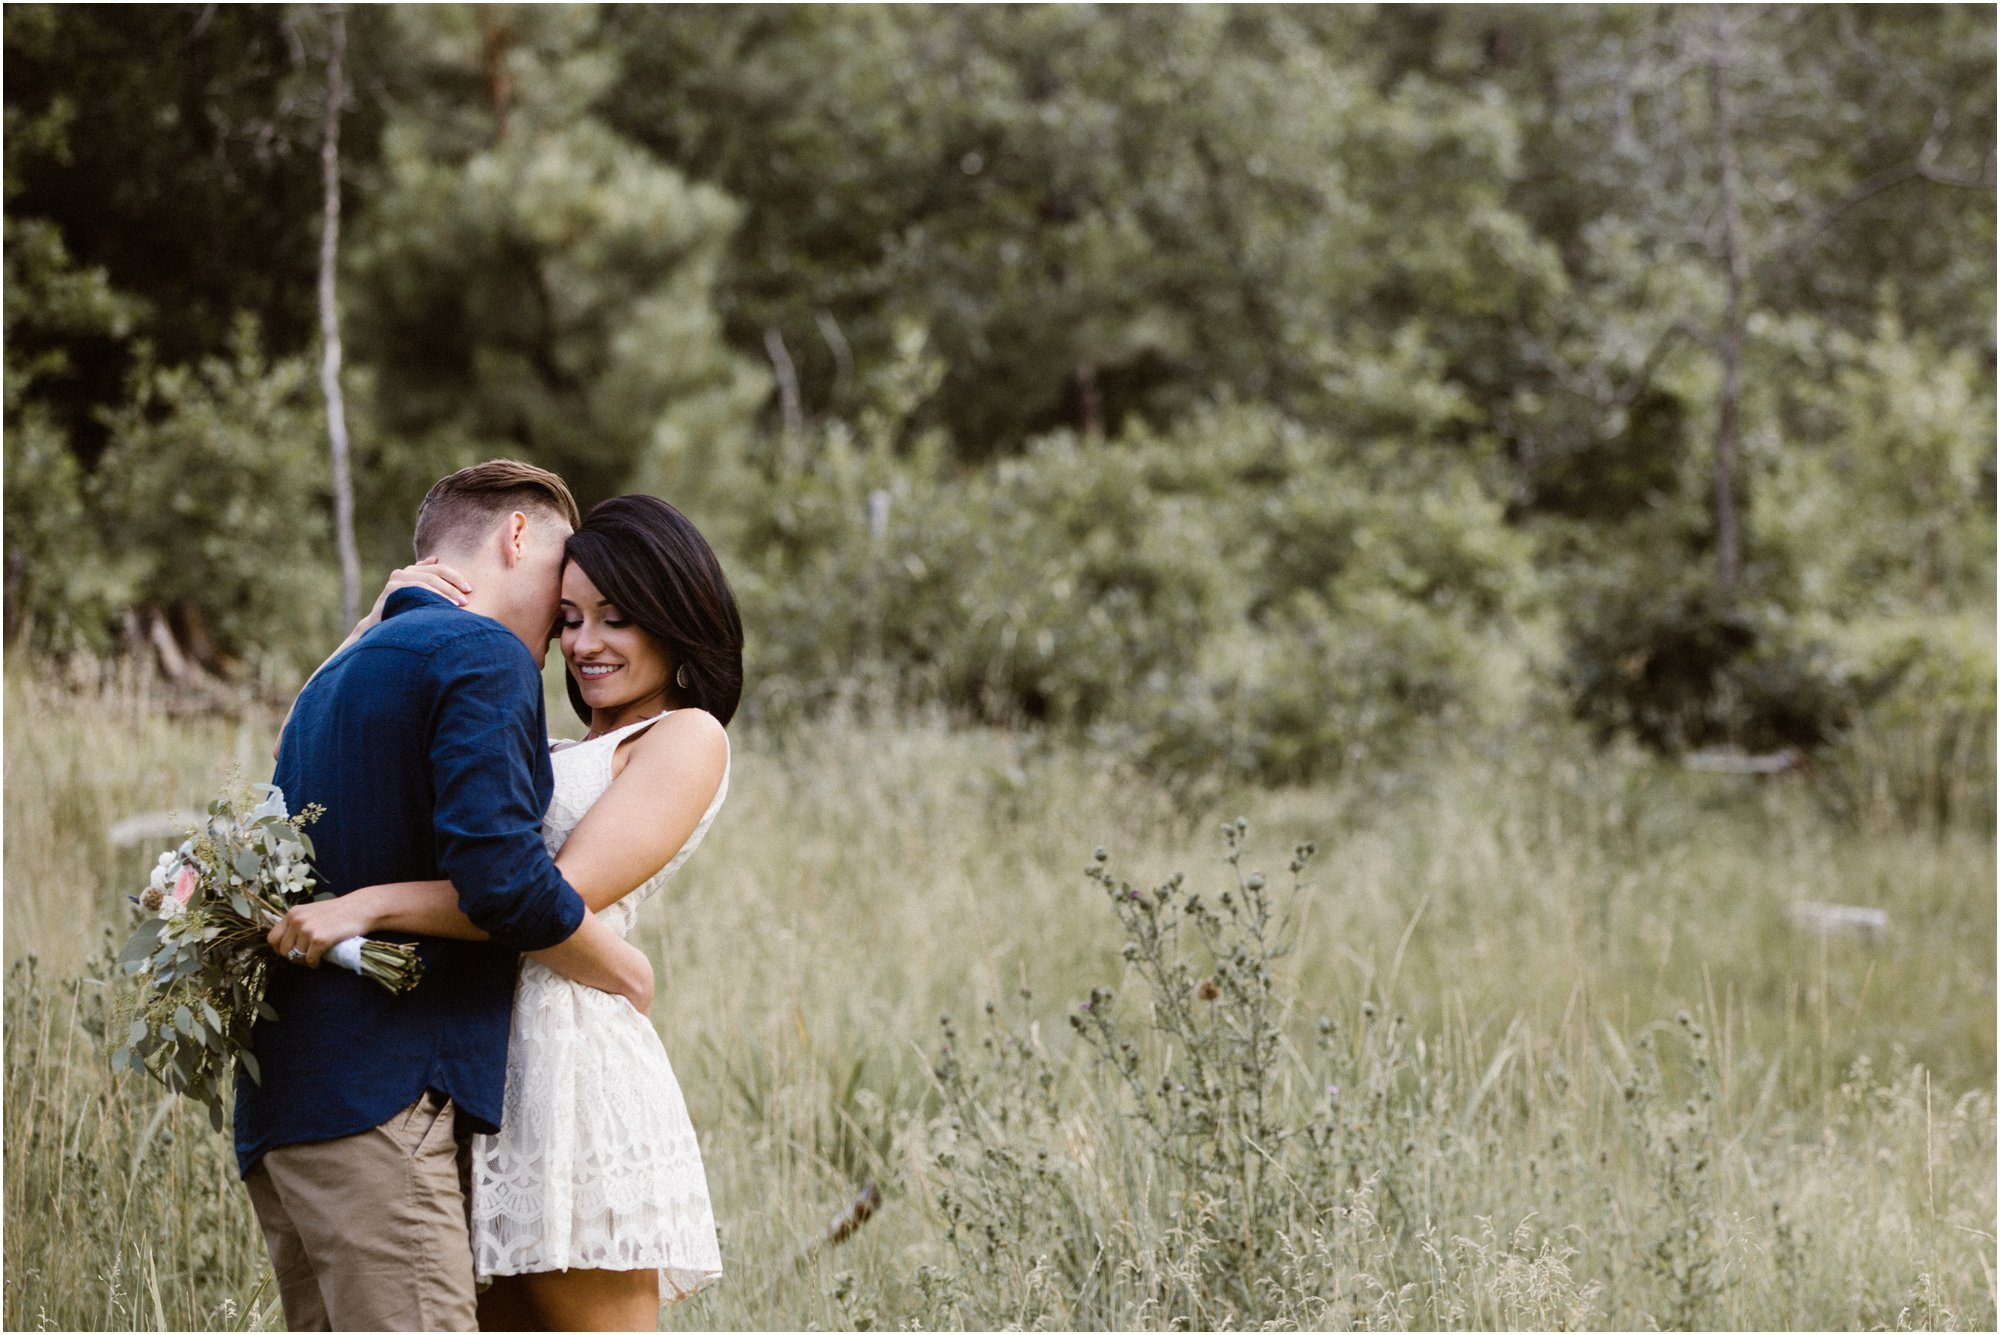 037Blue Rose Photography_ Albuquerque Engagement Photographer_ Blue Rose Studios_ Anniversary Pictures Santa Fe Photographer